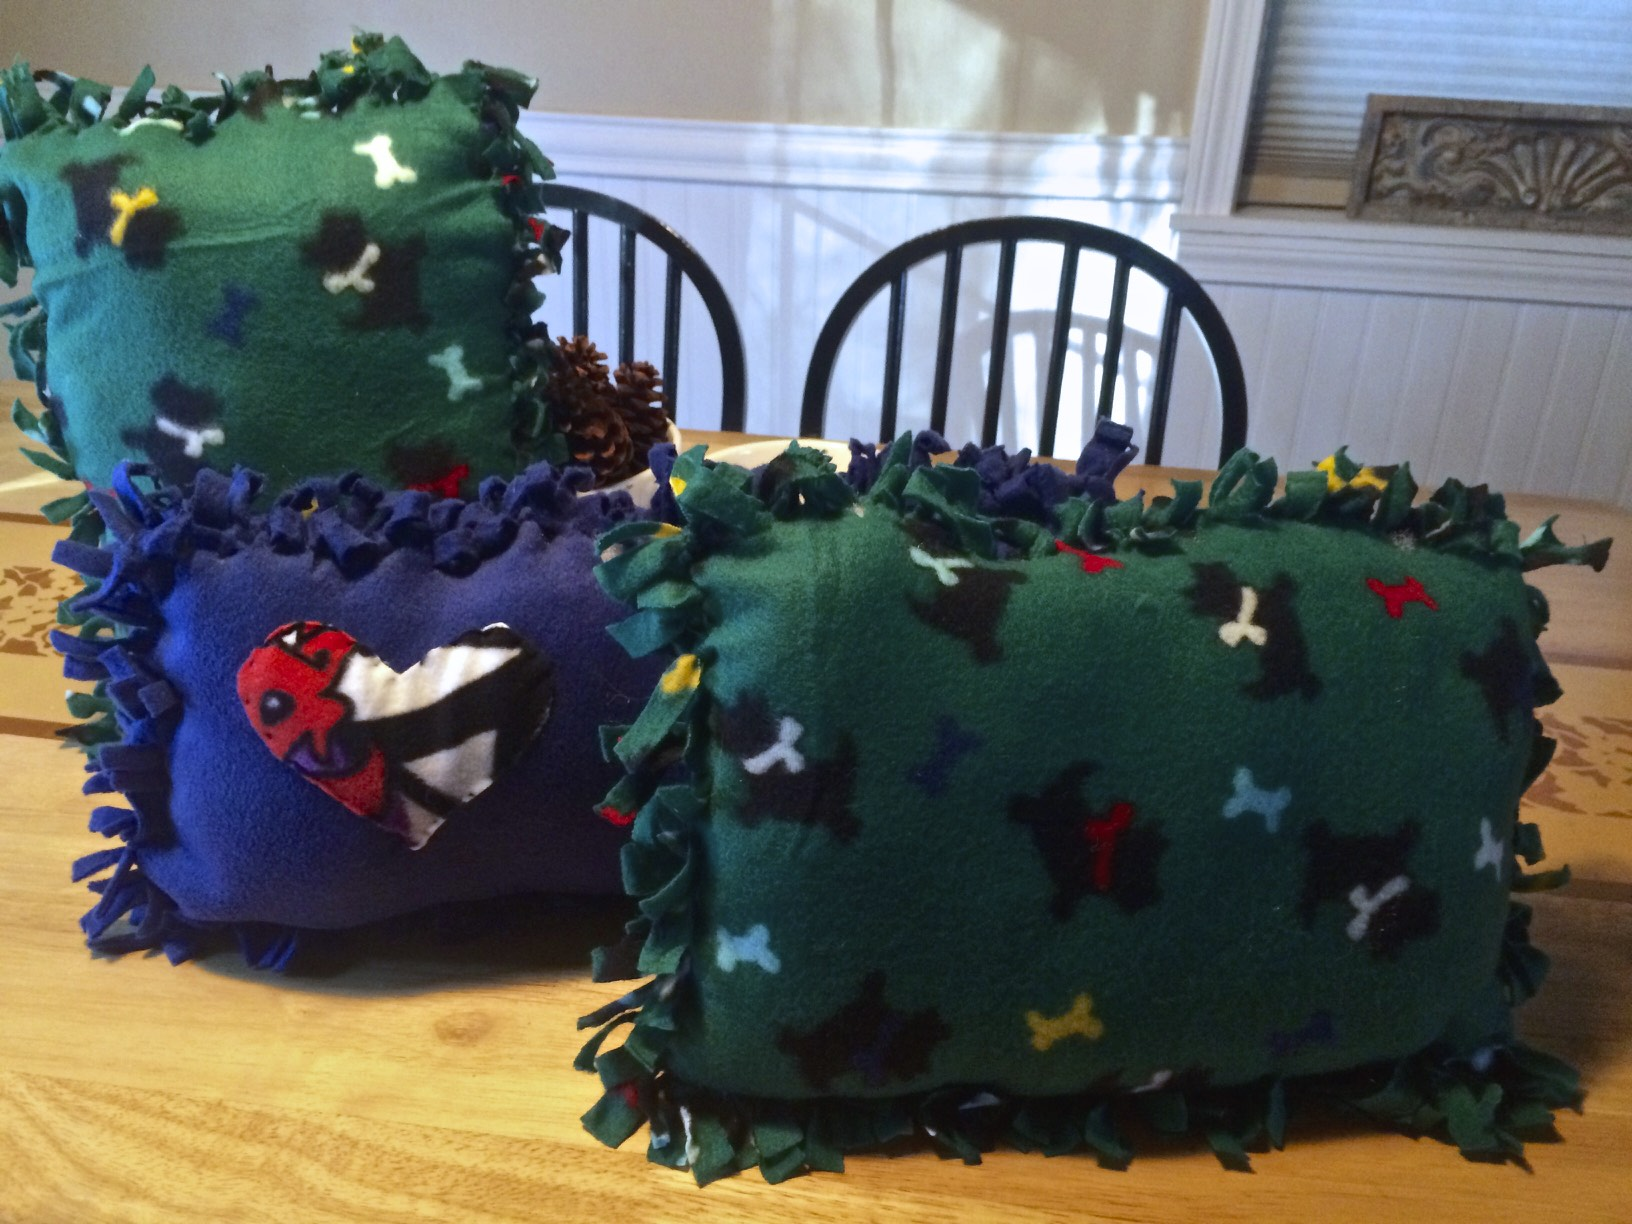 Super easy no sew pillows, all you need is fleece,scissors ( a good pair) and any kind of polyfill stuffing. Click on image and it will bring you to a how to. Its for pet beds but sizes can vary for pillows. Small throw pillow size is great.